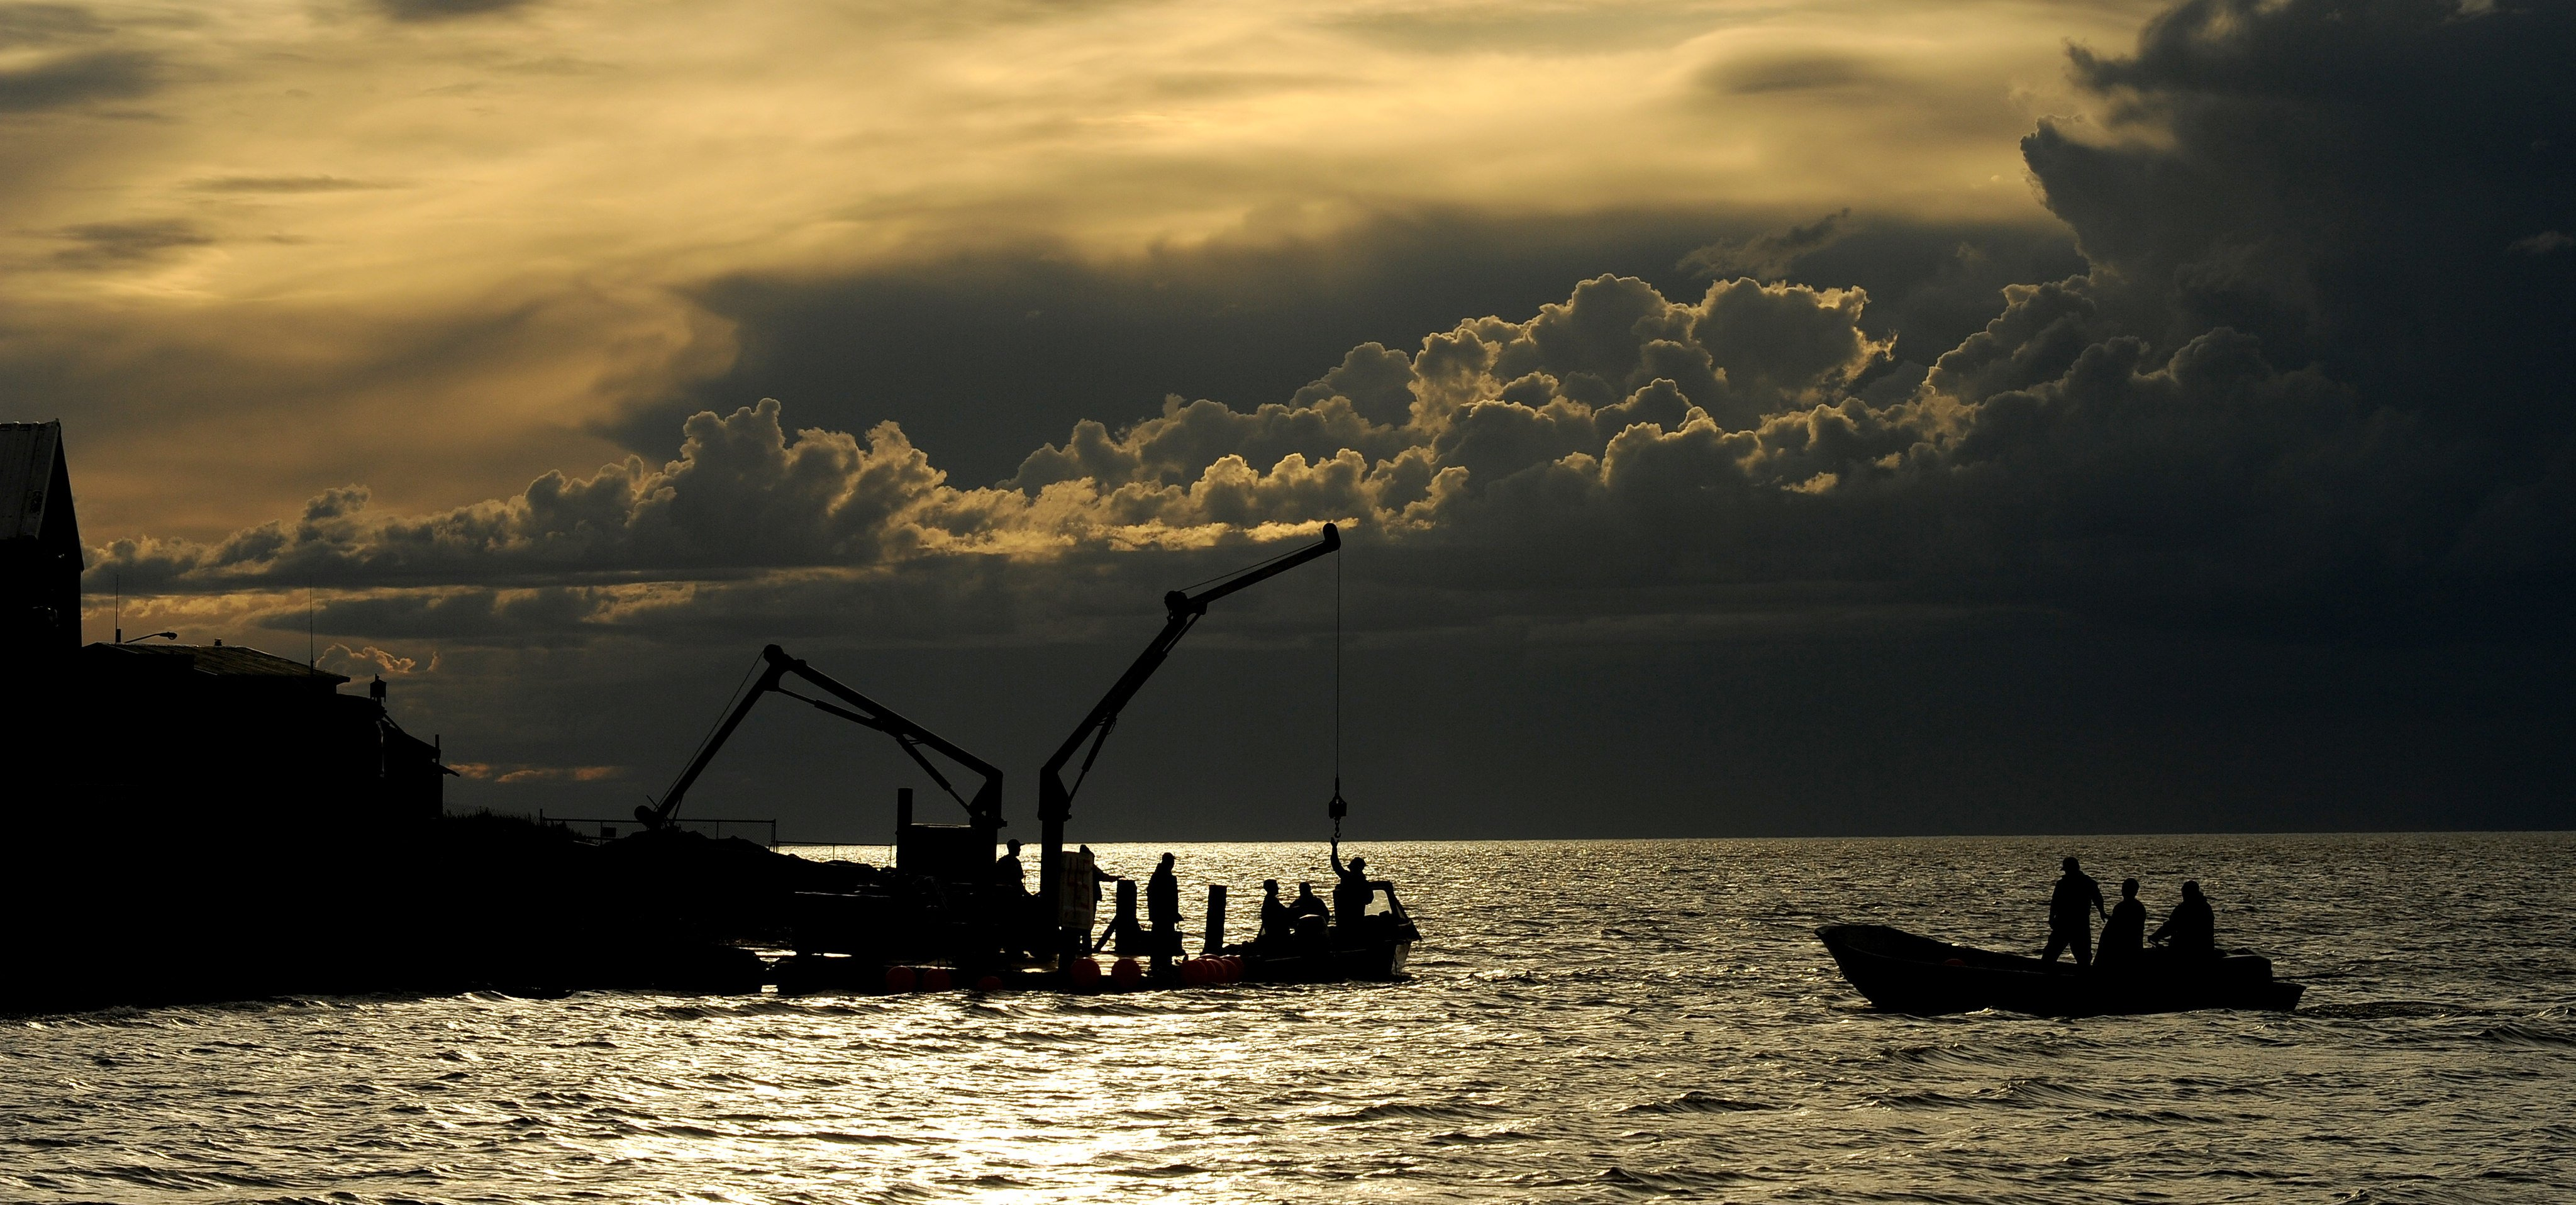 Fishing ban in international Arctic waters remains elusive